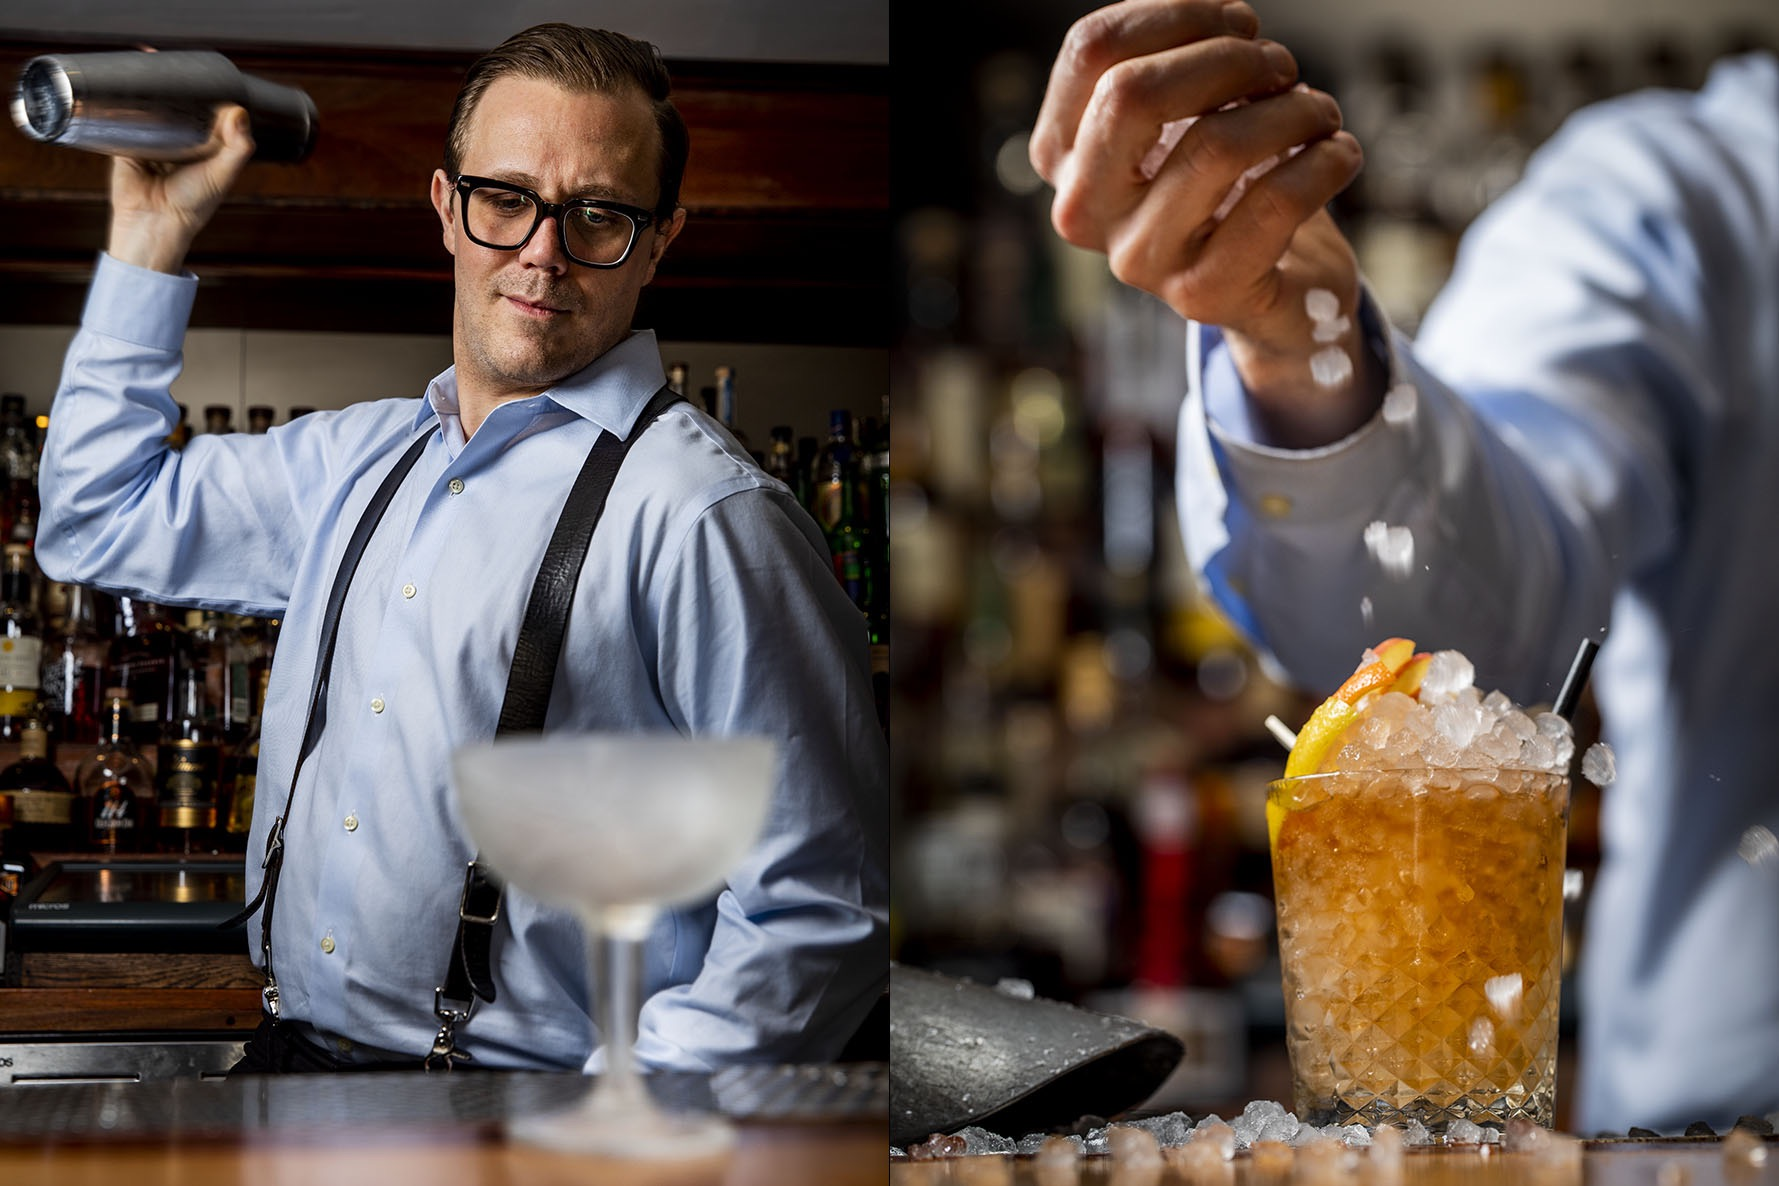 Head mixologist Jim Kearns mixing a drink at the underground bar Slowly Shirley.